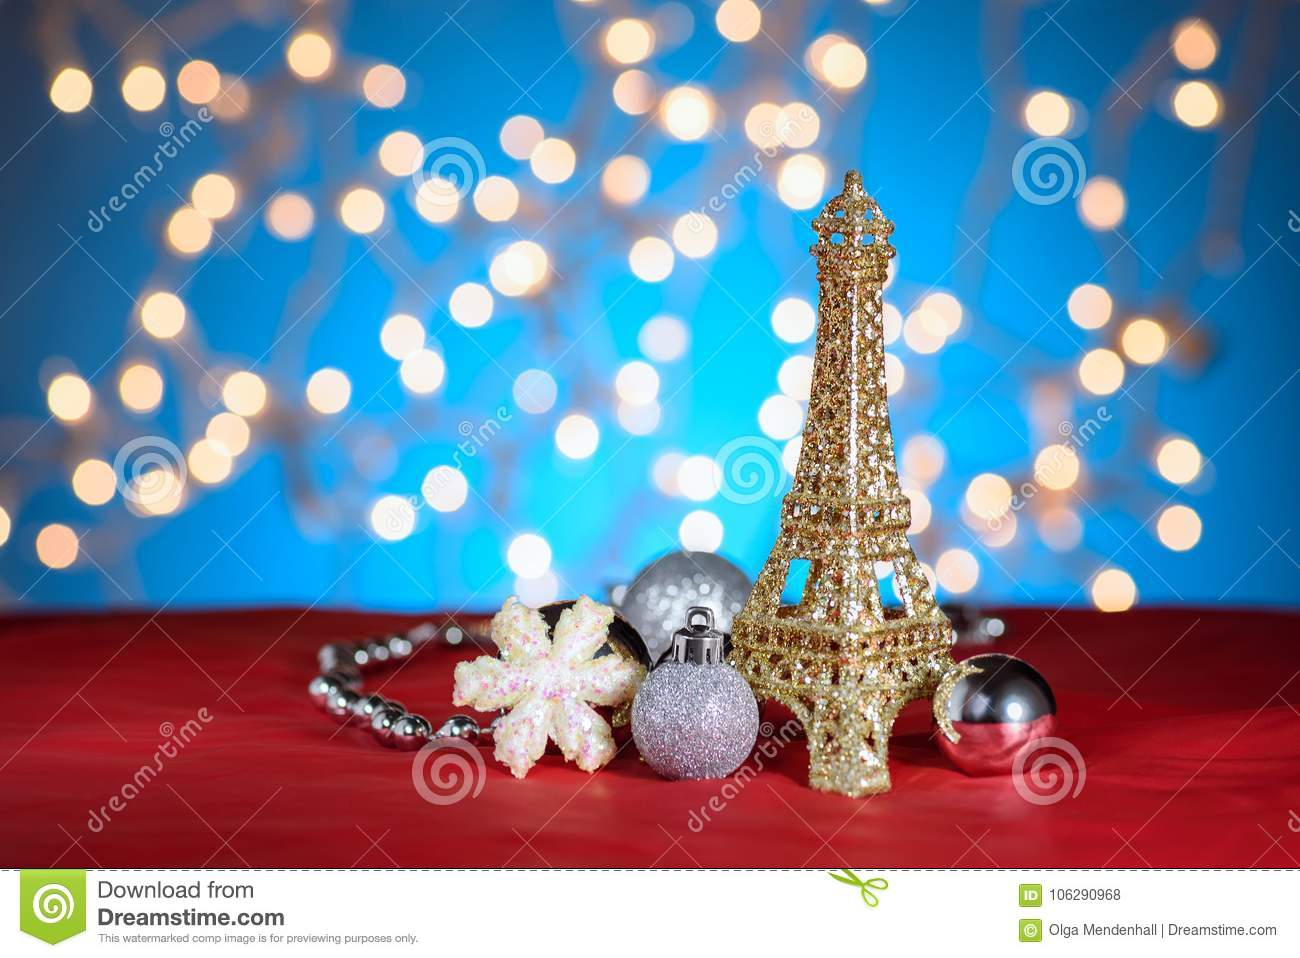 eiffel tower golden decor toy christmas new year decorations ornaments blue